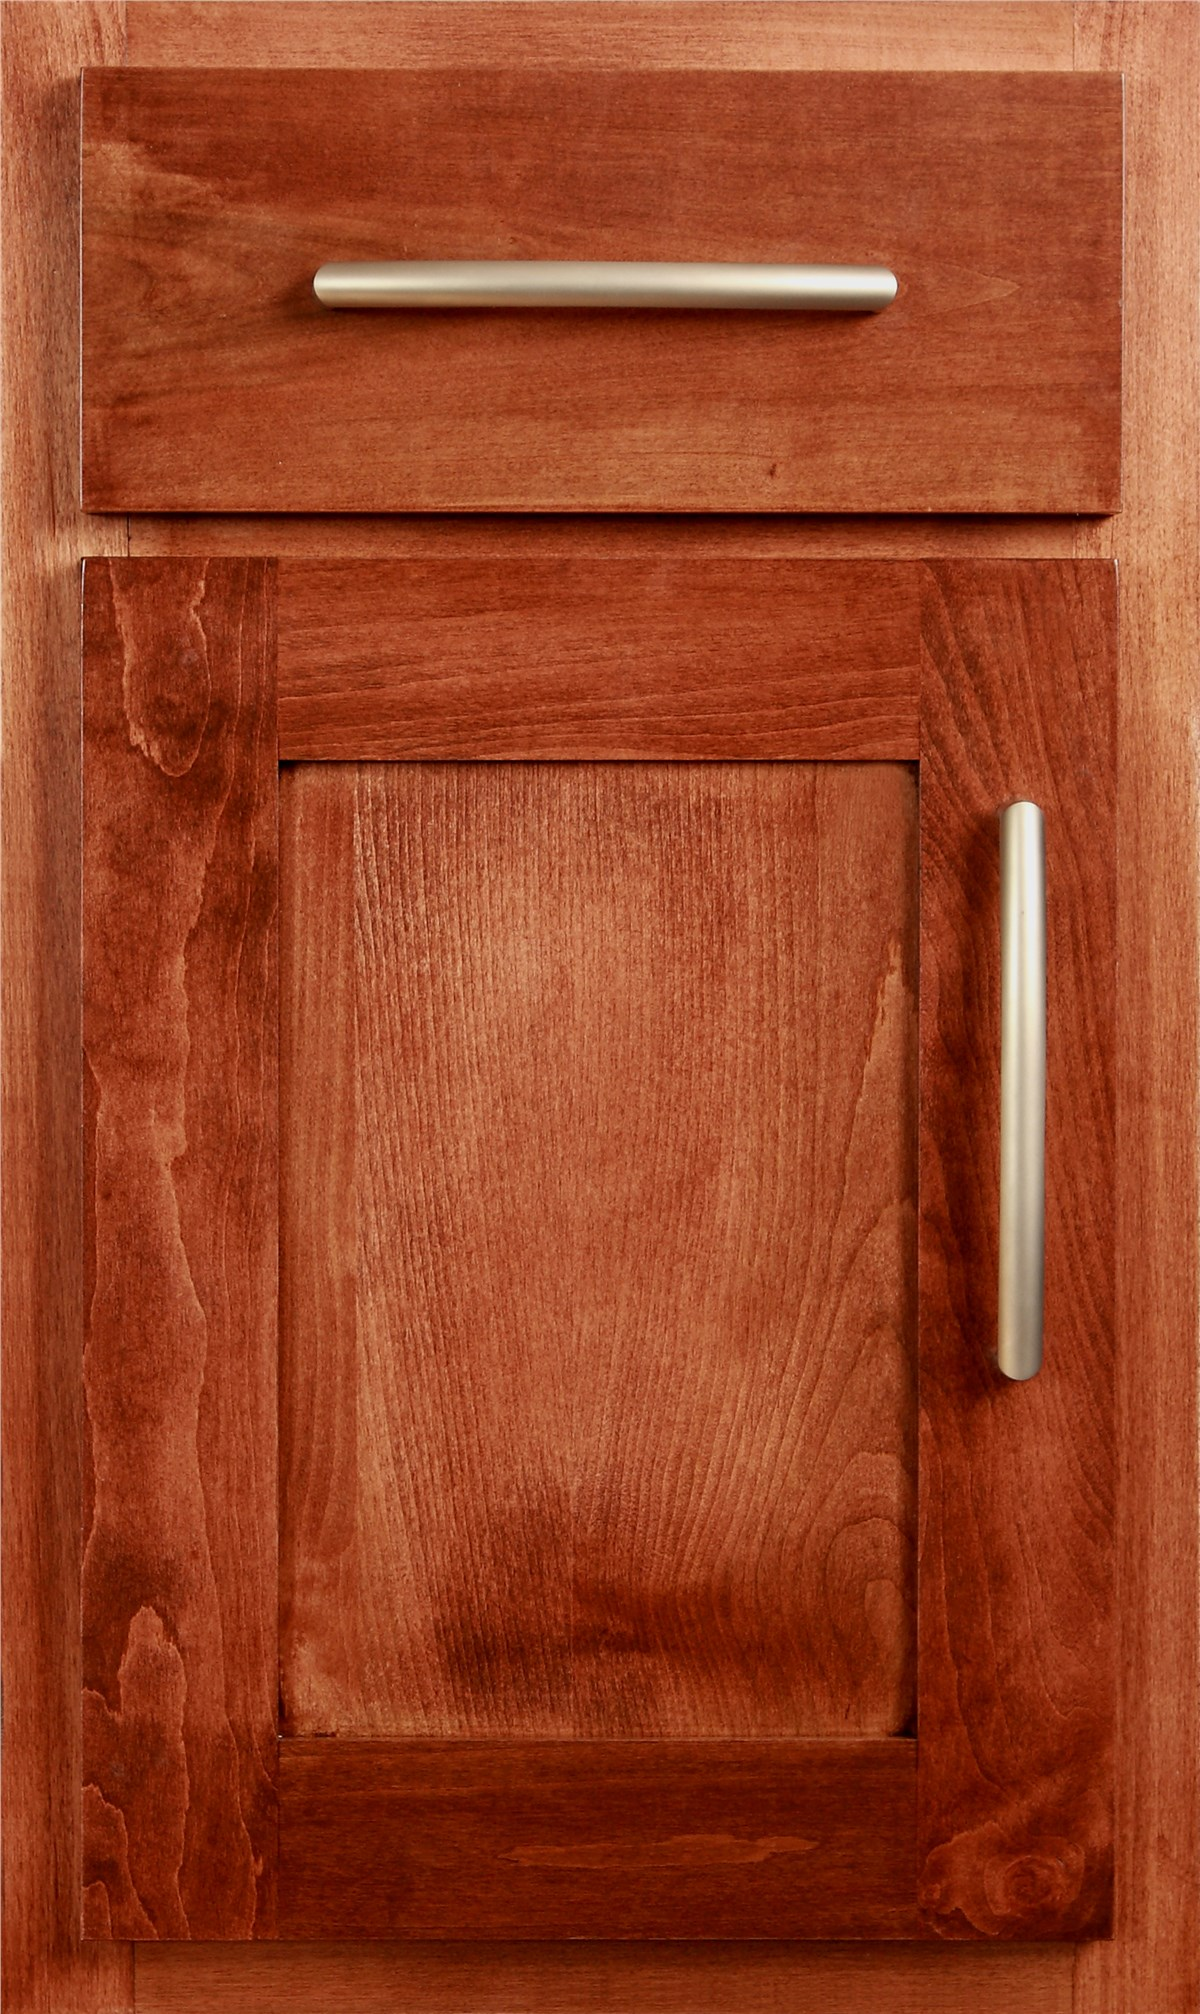 cabinet refacing kitchen cabinet door replacement We can then cover your existing cabinets with durable wood veneer that perfectly complements all aspects of your dream kitchen